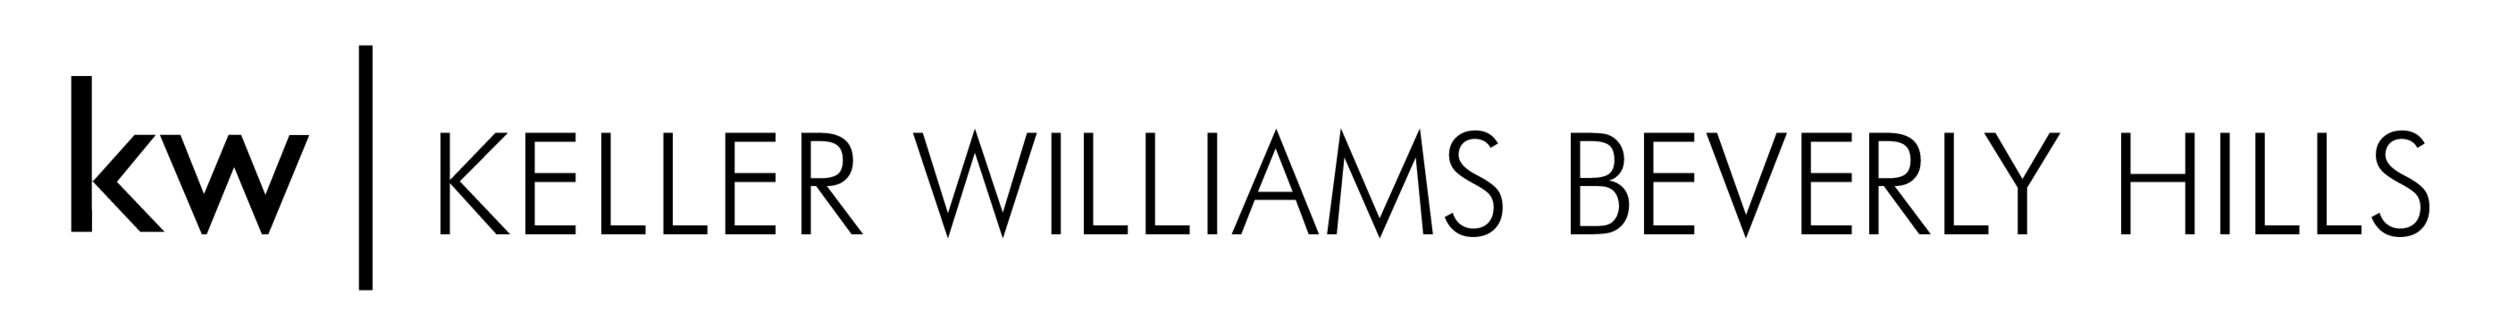 kw-logo_bh_longer black-01.png